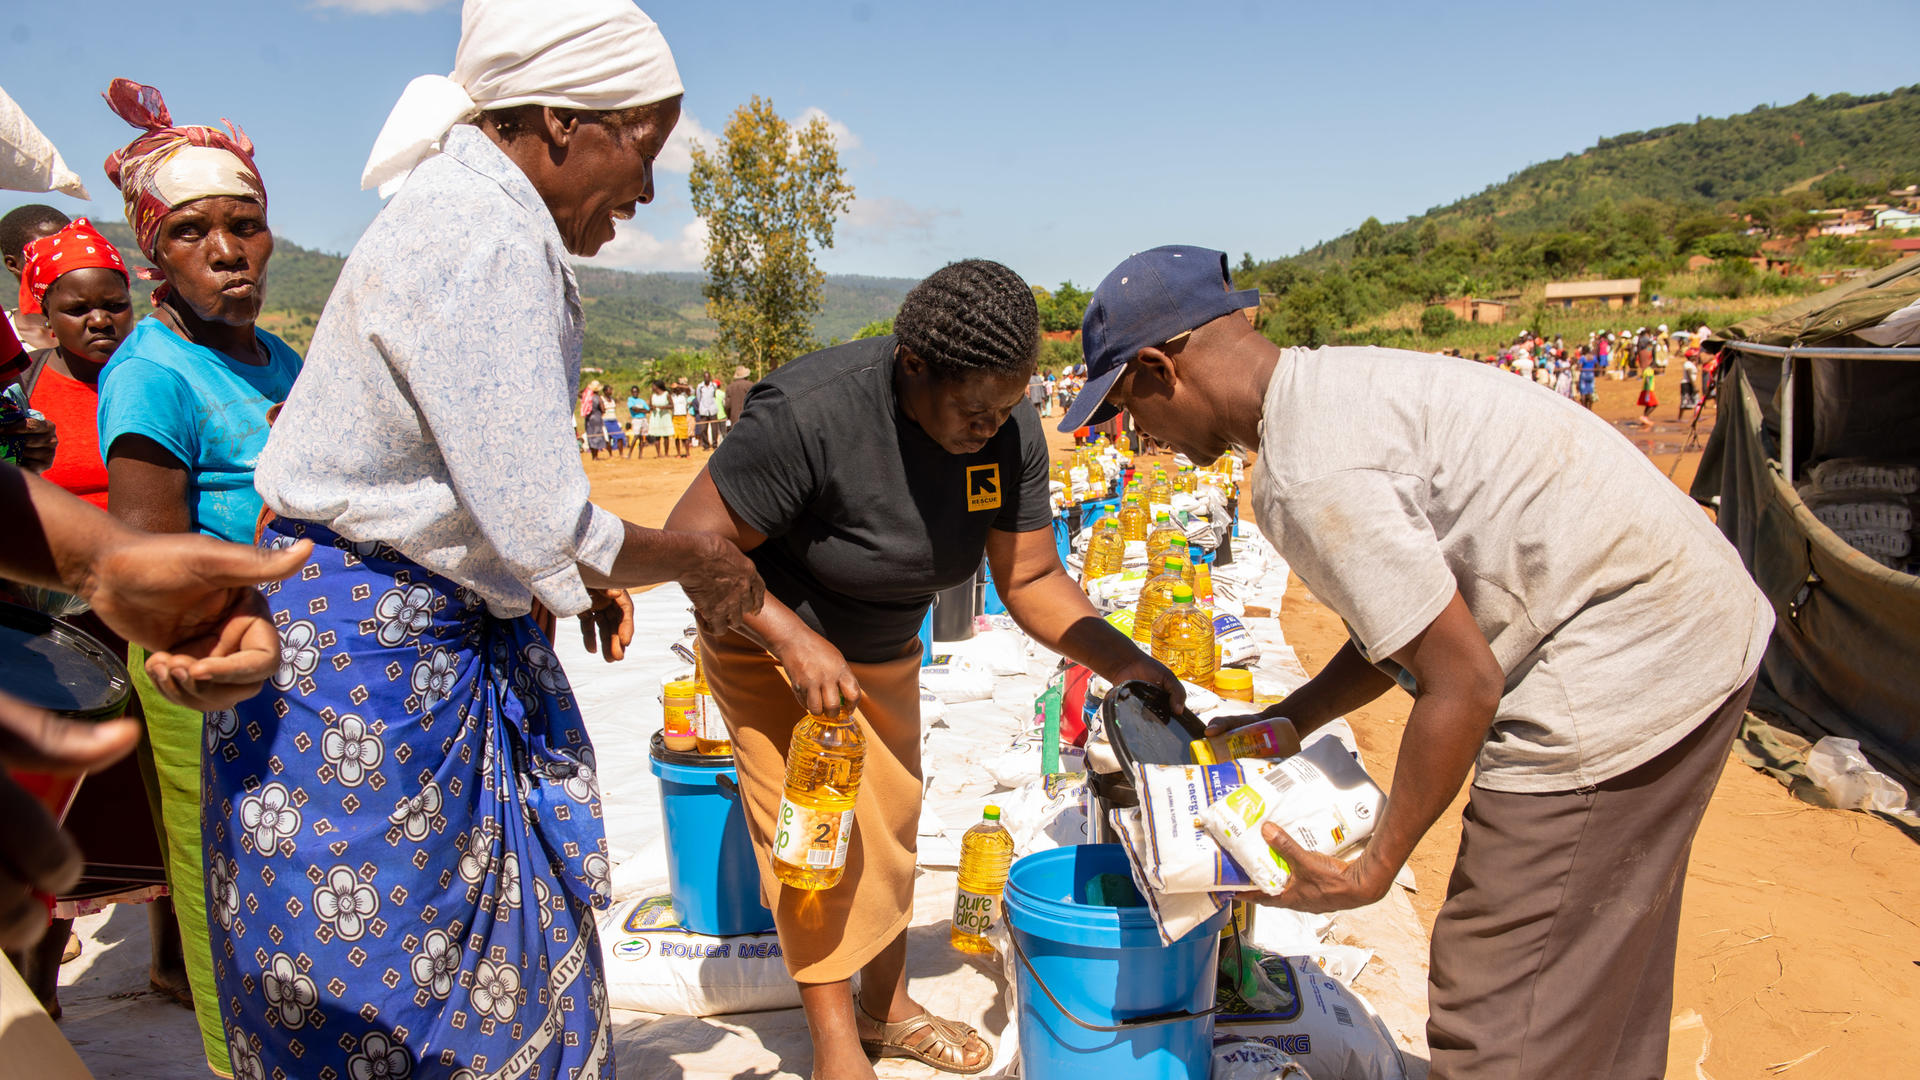 A woman collects food and emergency aid from IRC staff in Zimbabwe after Cyclone Idai